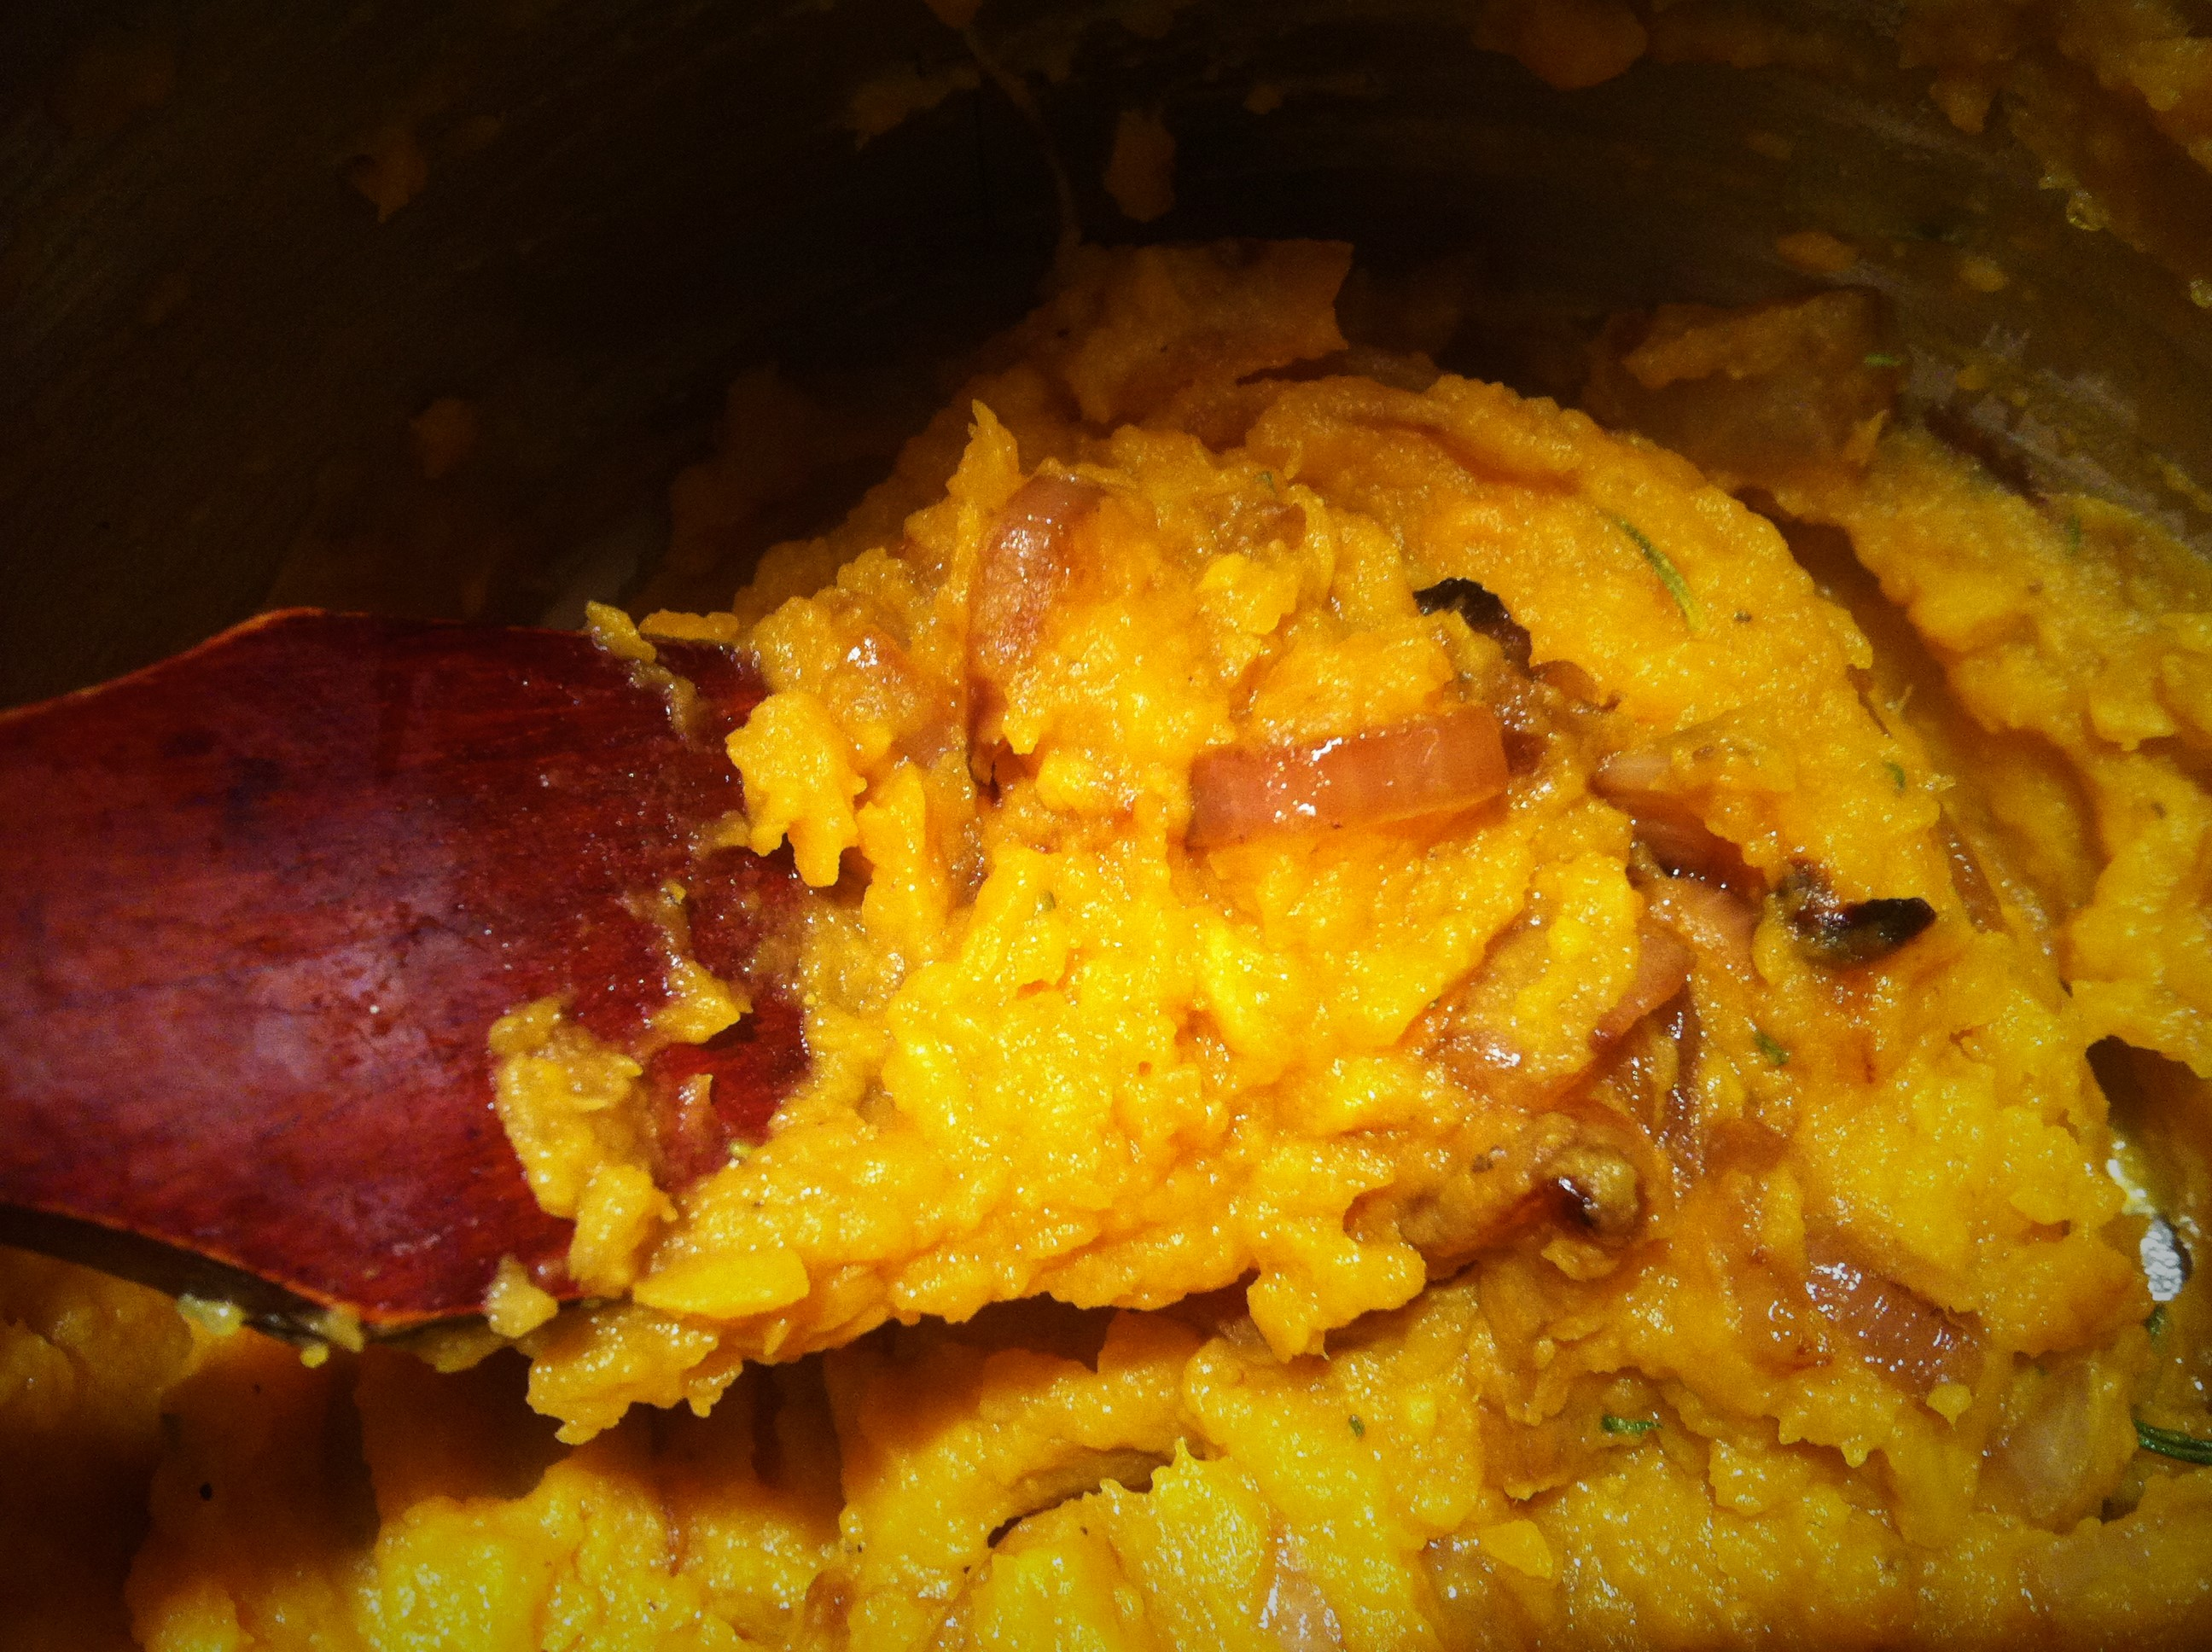 Yummy mashed sweet potatoes with rosemary and sea salt (and caramelized onions).